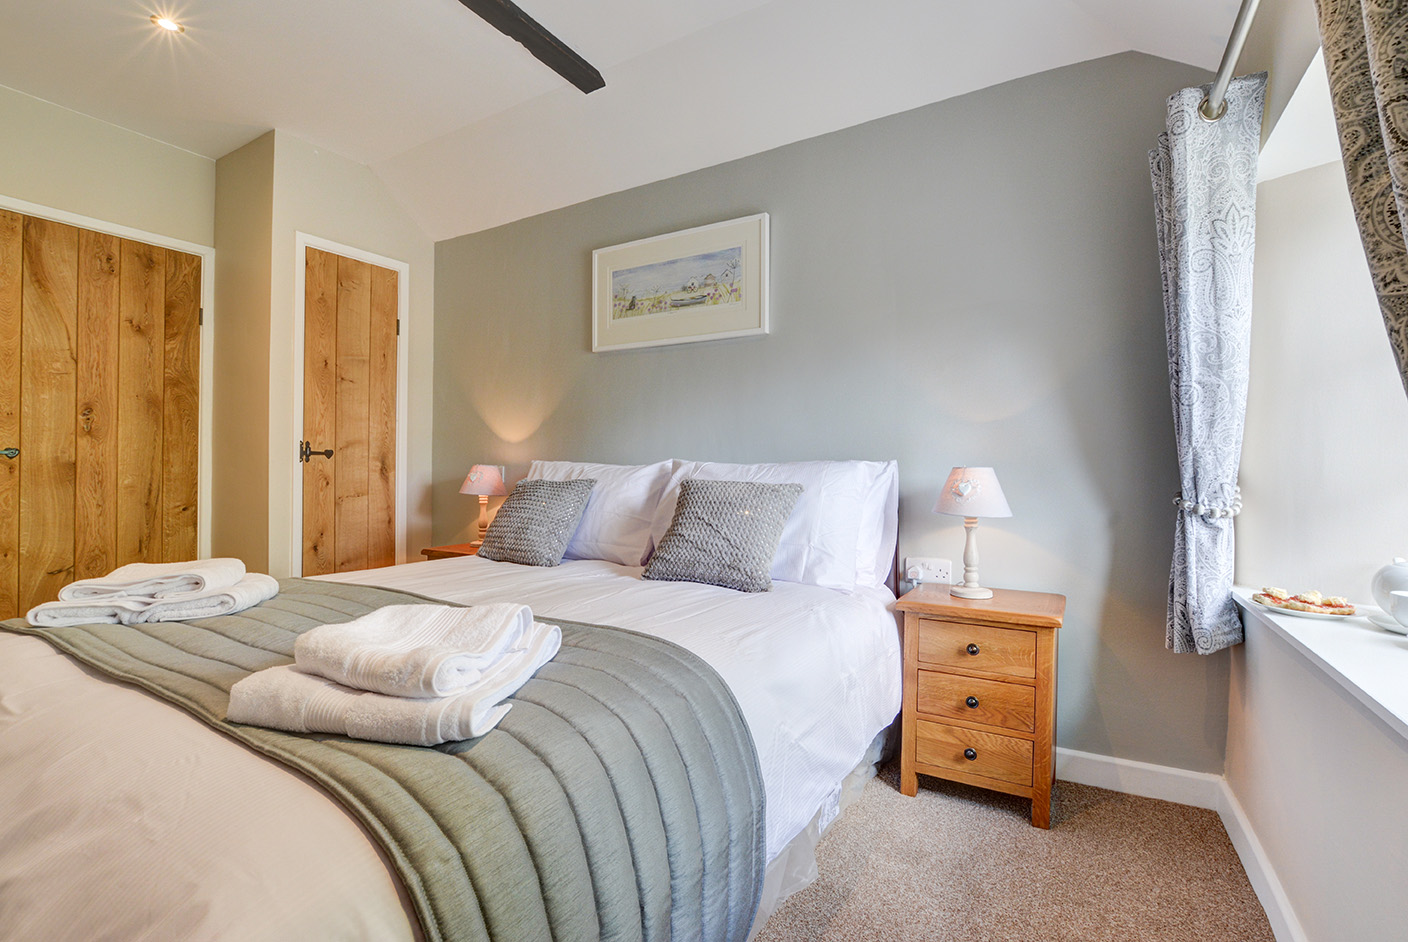 The first bedroom of Goosehill luxury self catering converted barn holiday cottage at Penrose Burden in North Cornwall 02.jpg